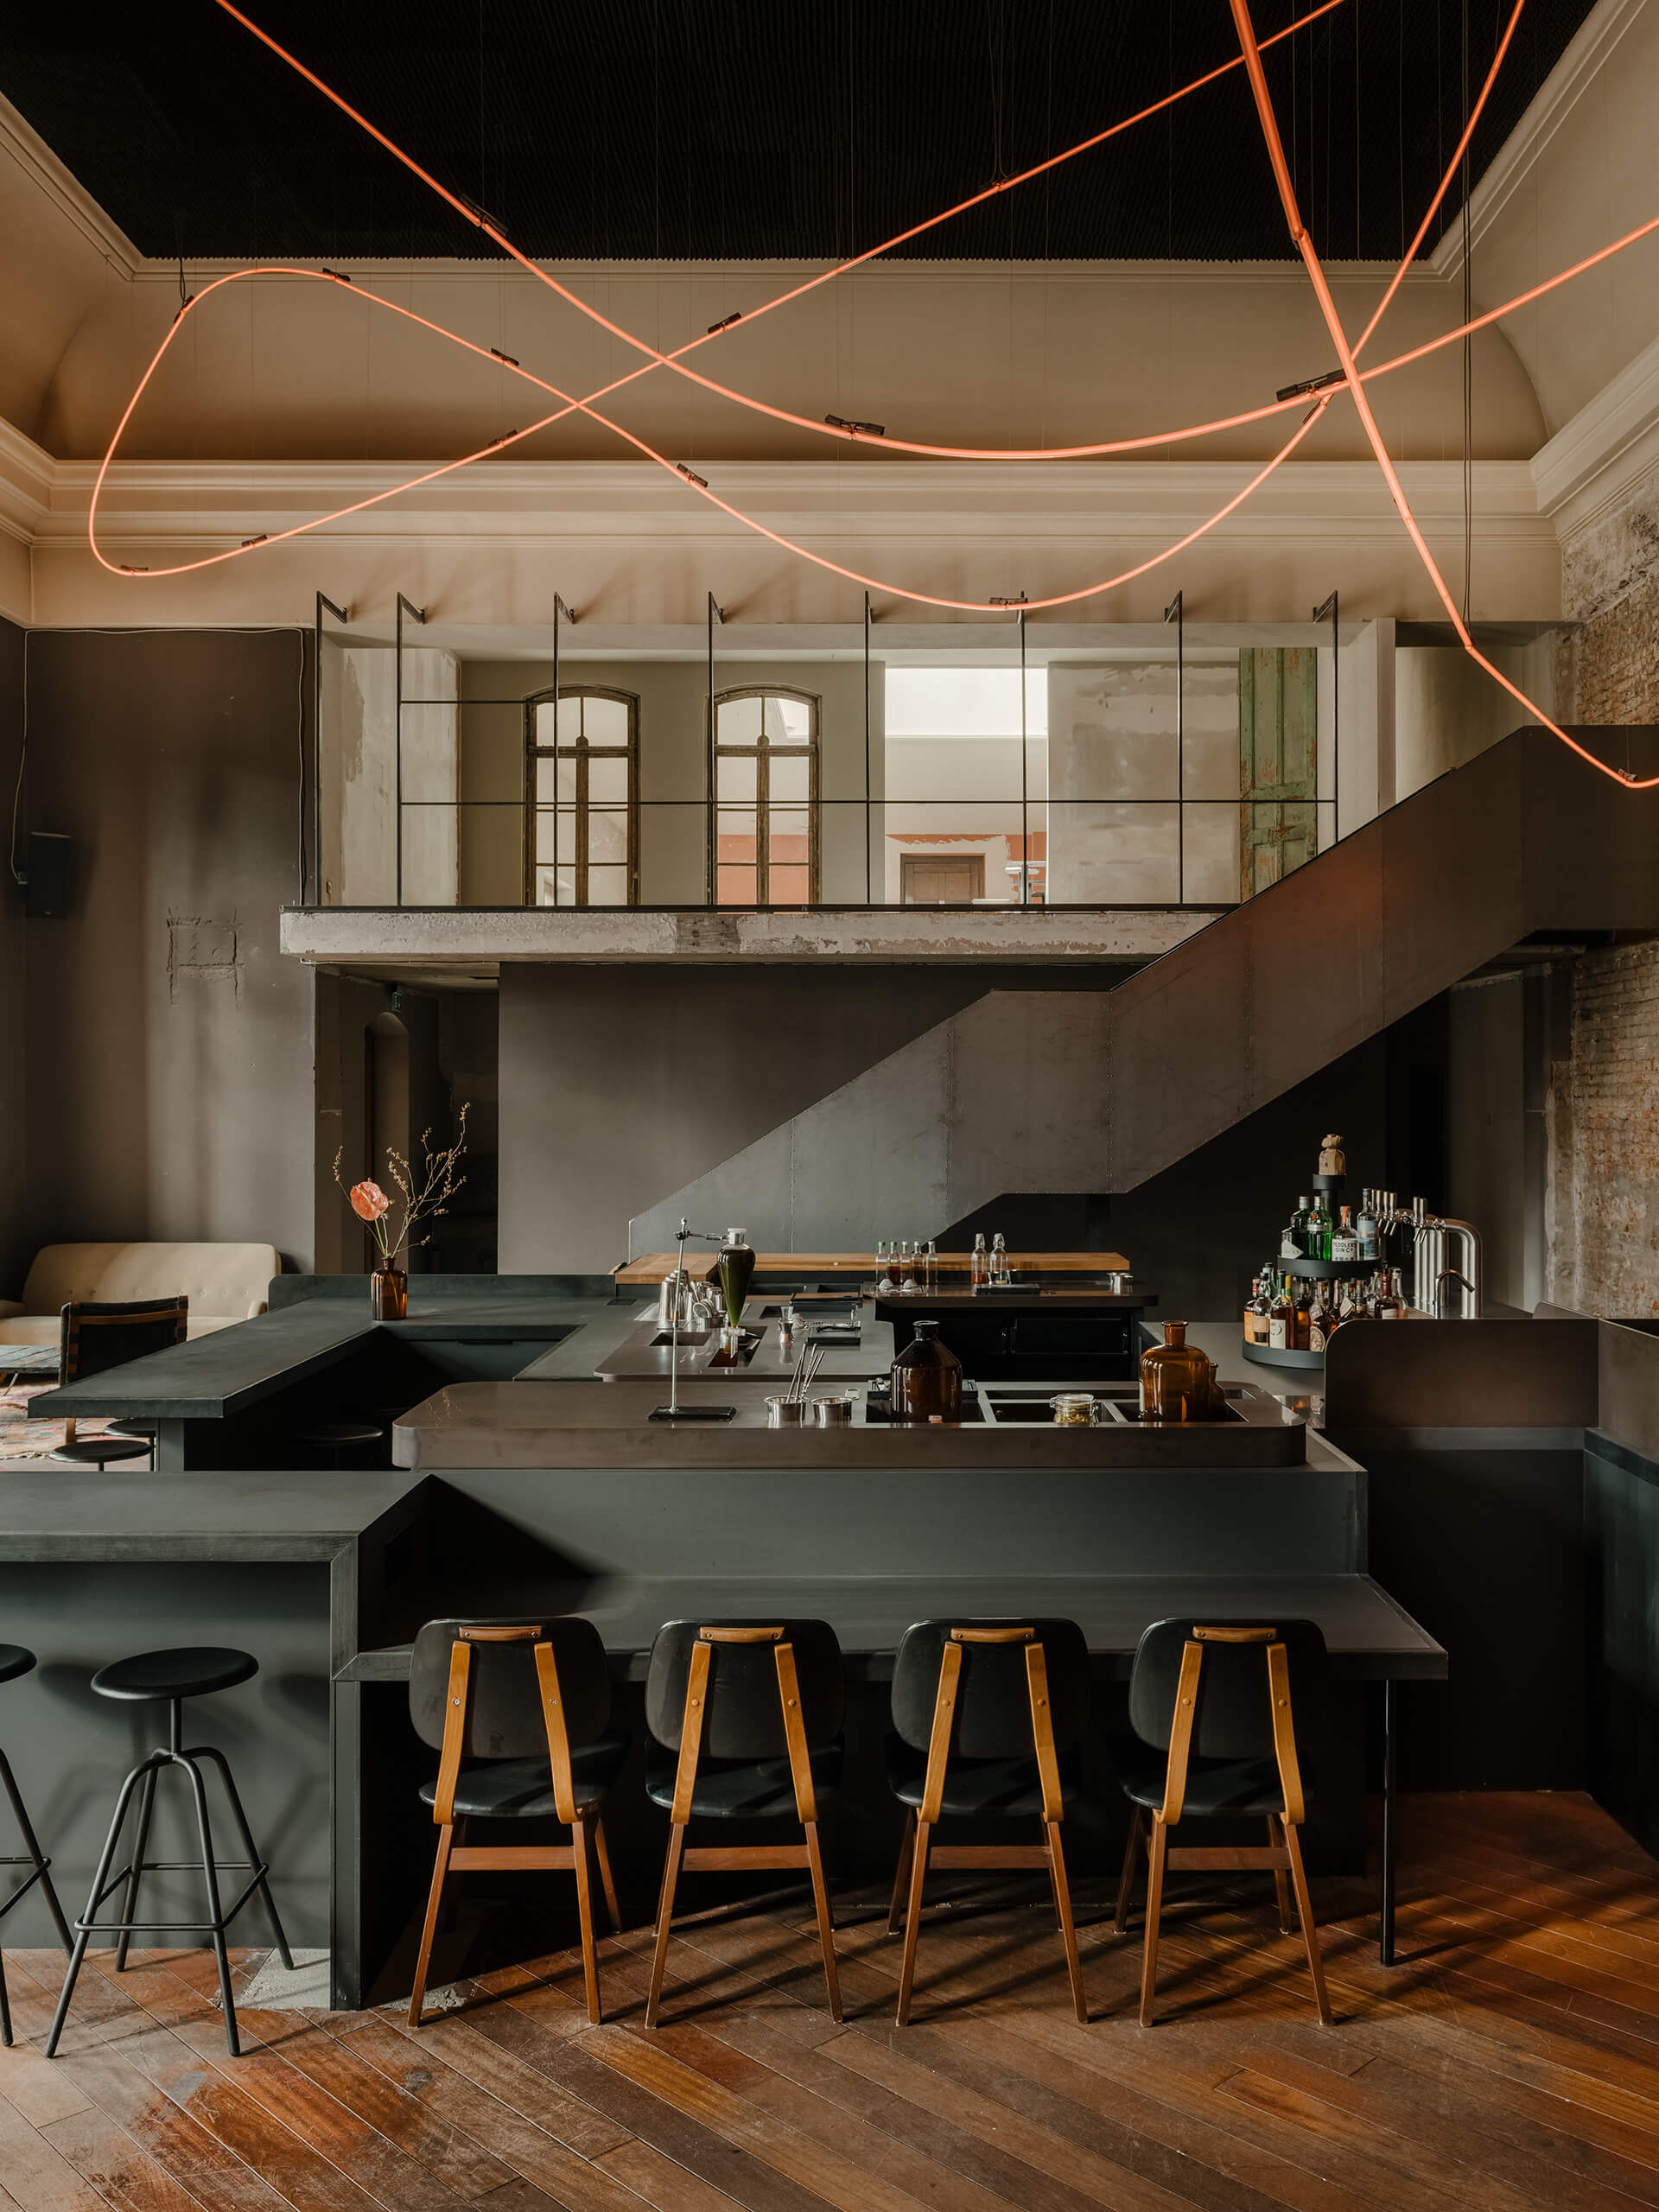 The bar below and galleries on the mezzanine | KINK Bar and Restaurant by Oliver Mansaray and Daniel Scheppan | STIRworld